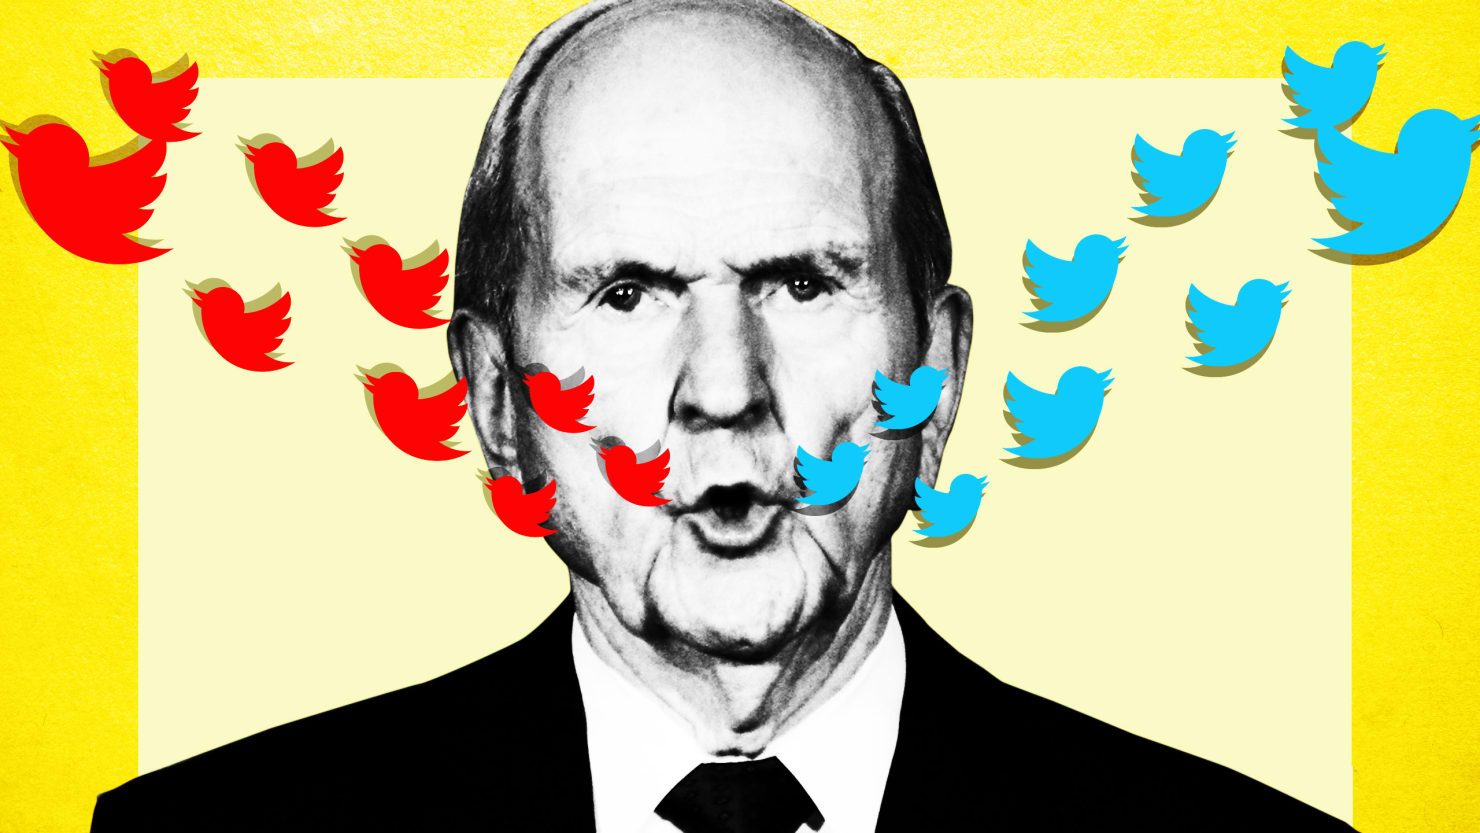 The 'Hypersexualized' Mormon Church President Impersonator Angering LDS Twitter (thedailybeast.com)